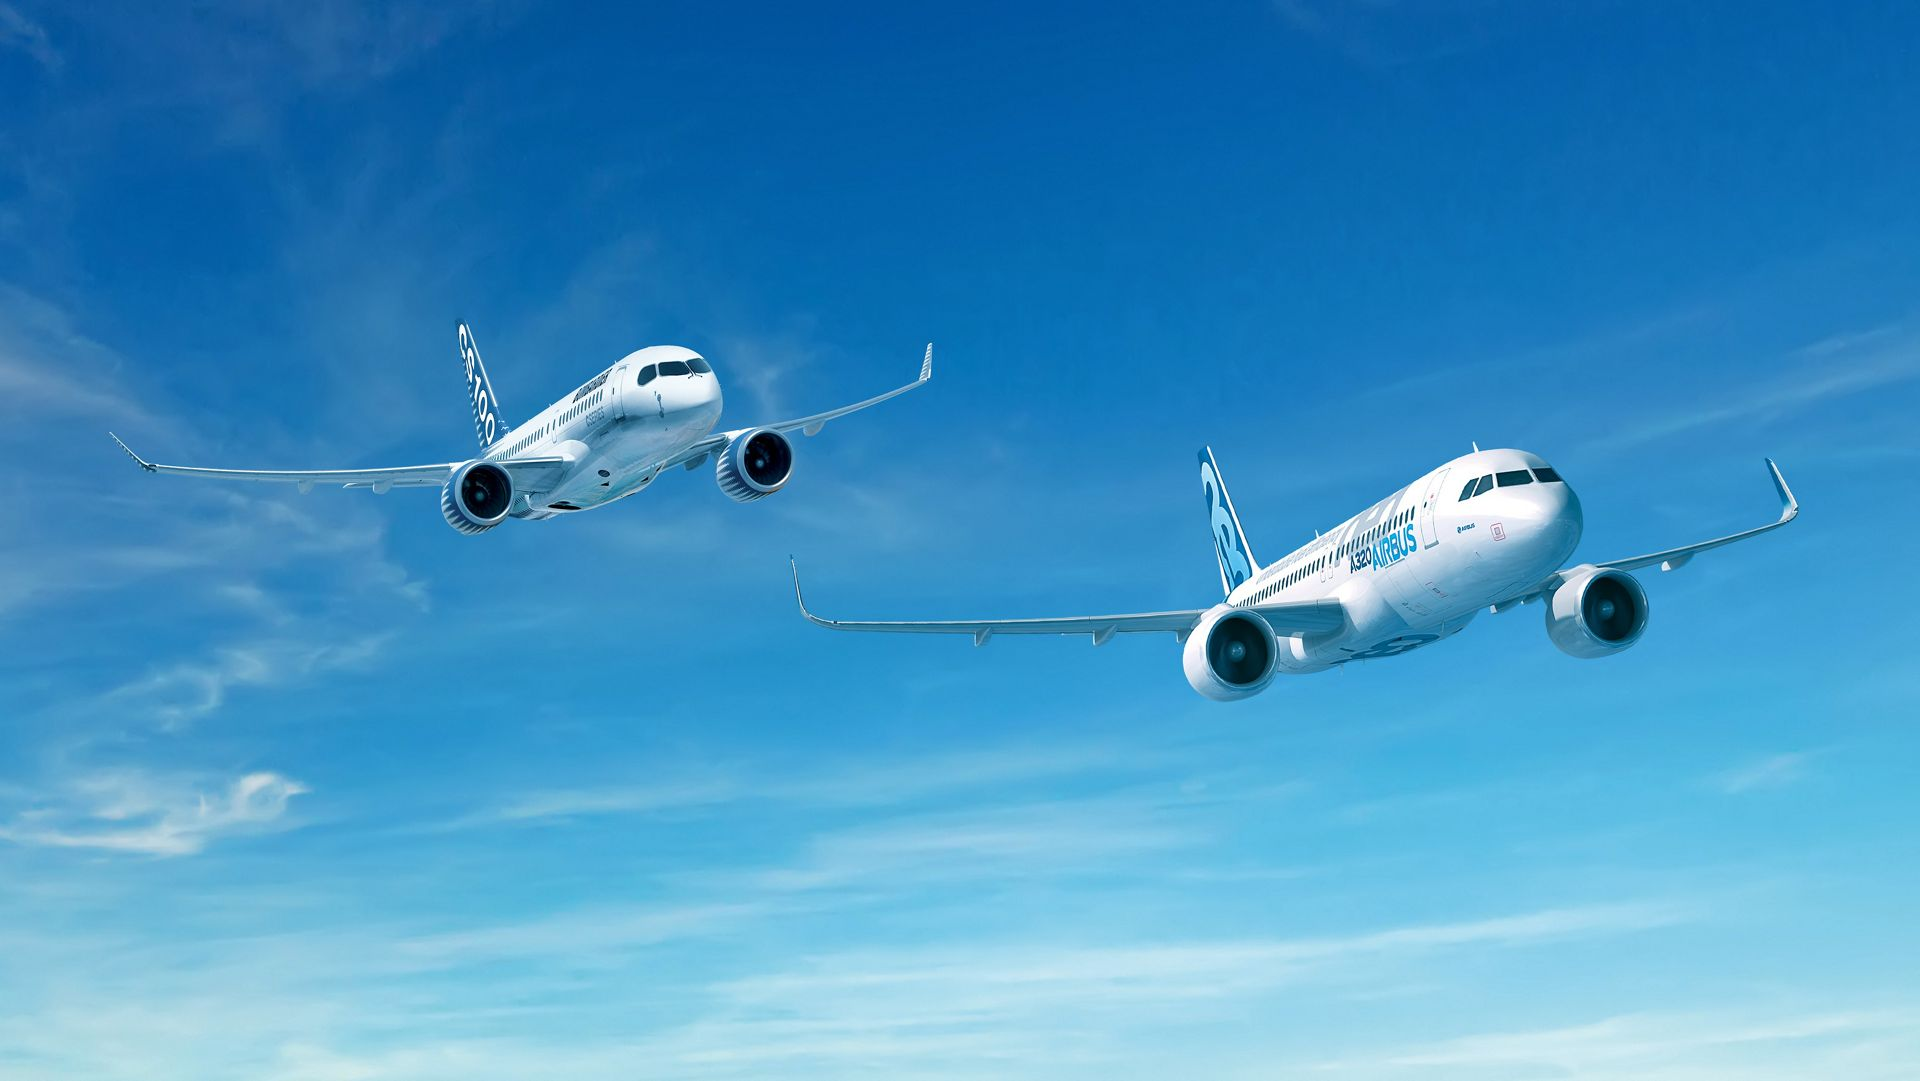 Airbus And Bombar R Announce C Series Partnership